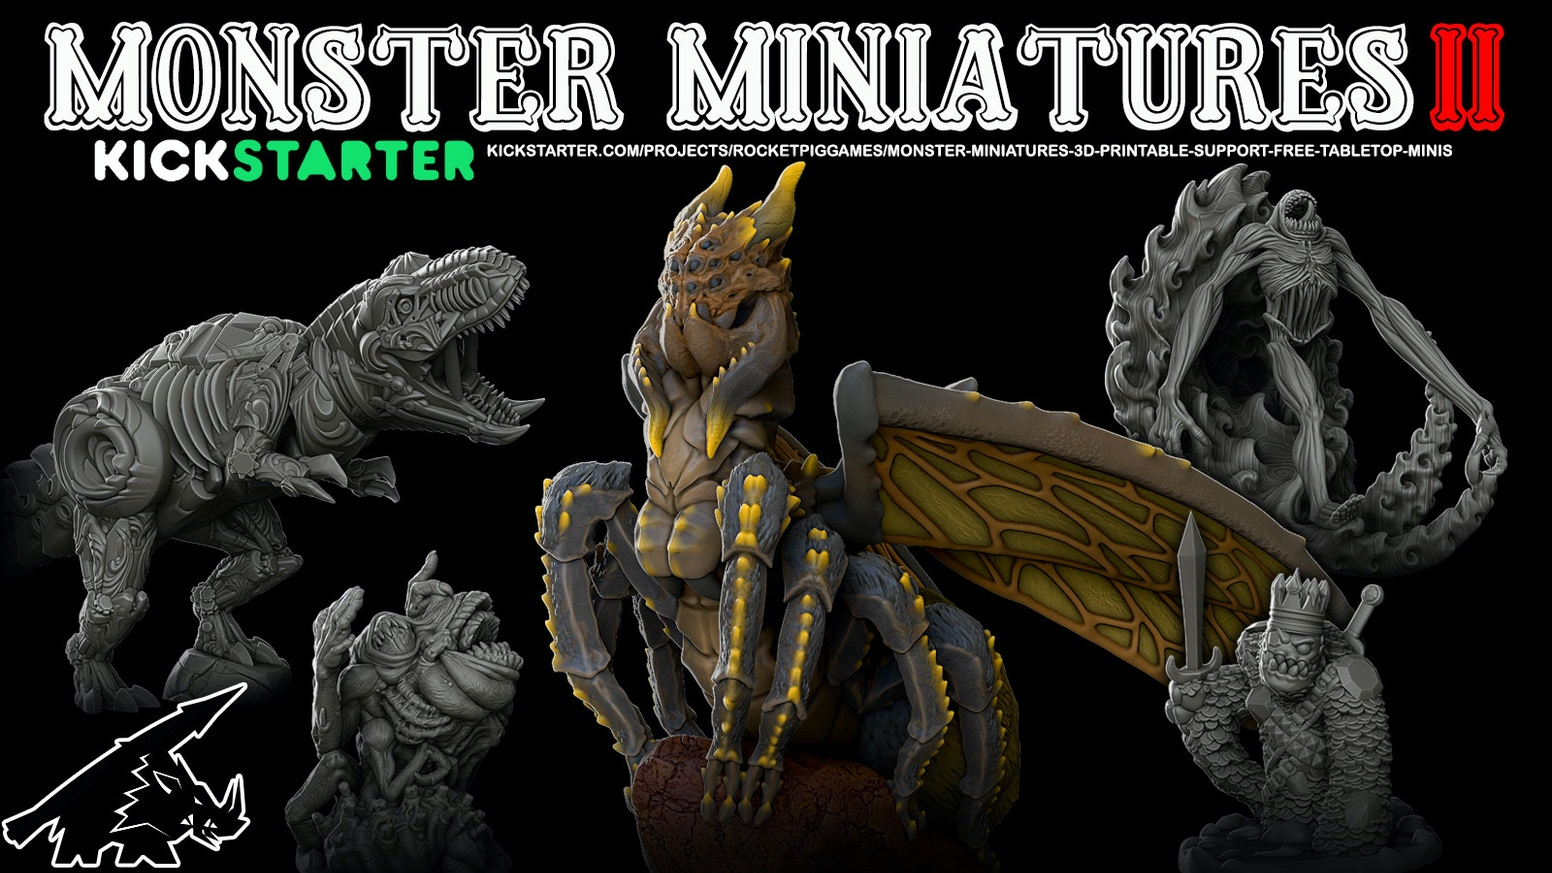 Monster Miniatures II are support-free 3d printable models for your tabletop.